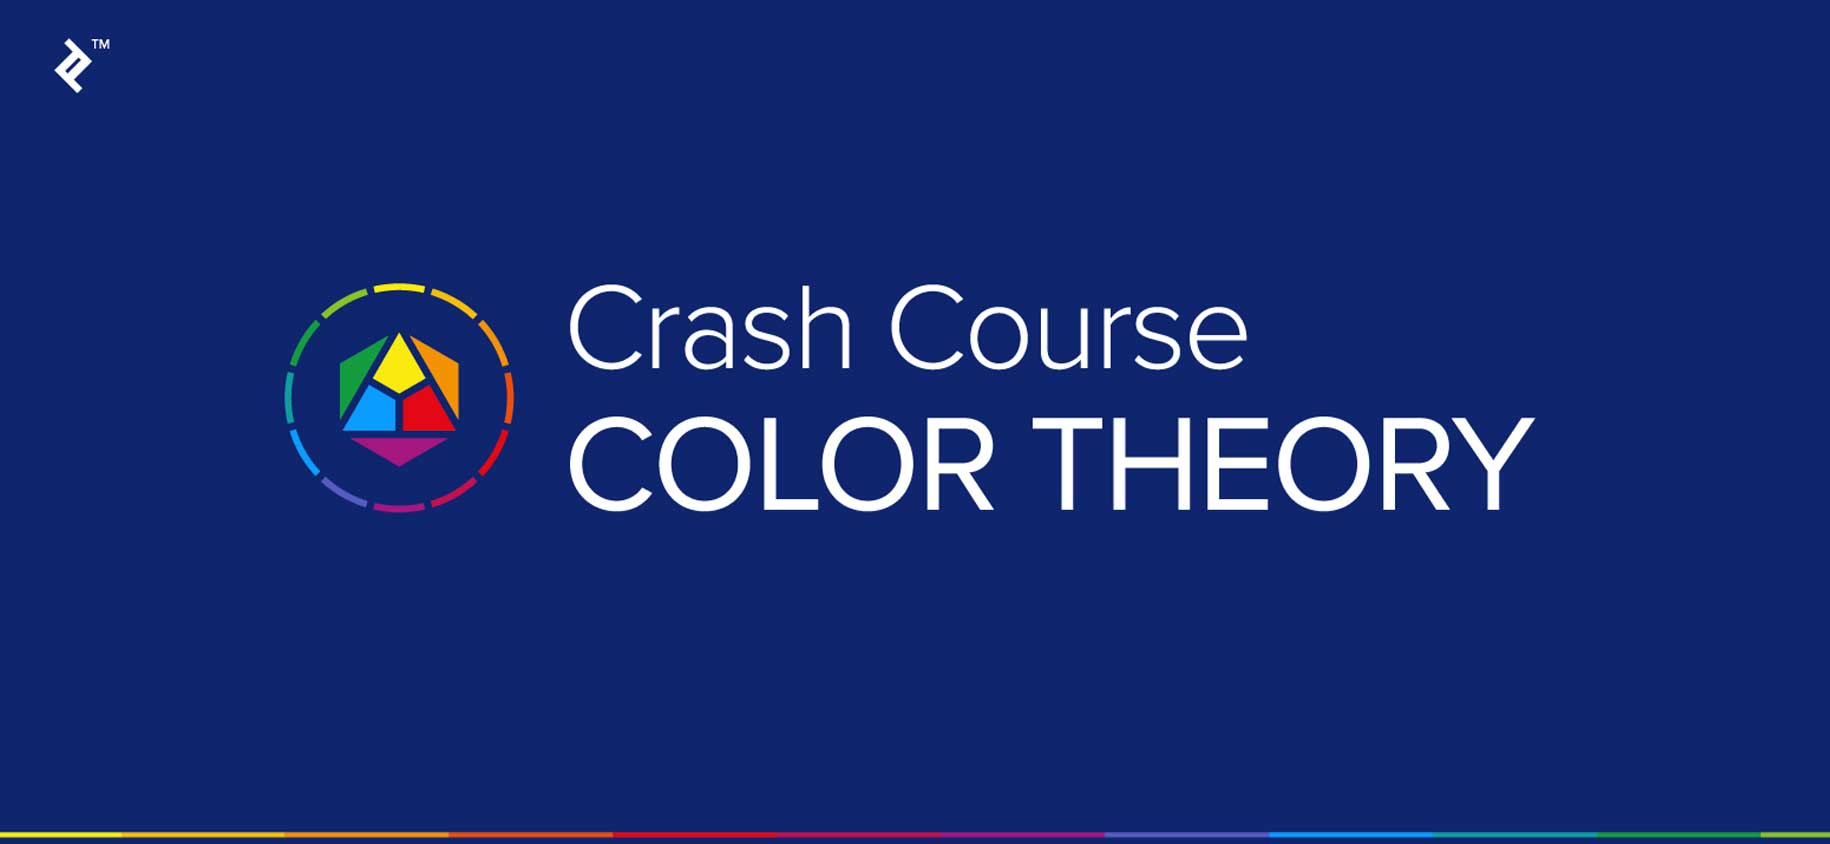 Color Theory for Designers: A Crash Course [Infographic]